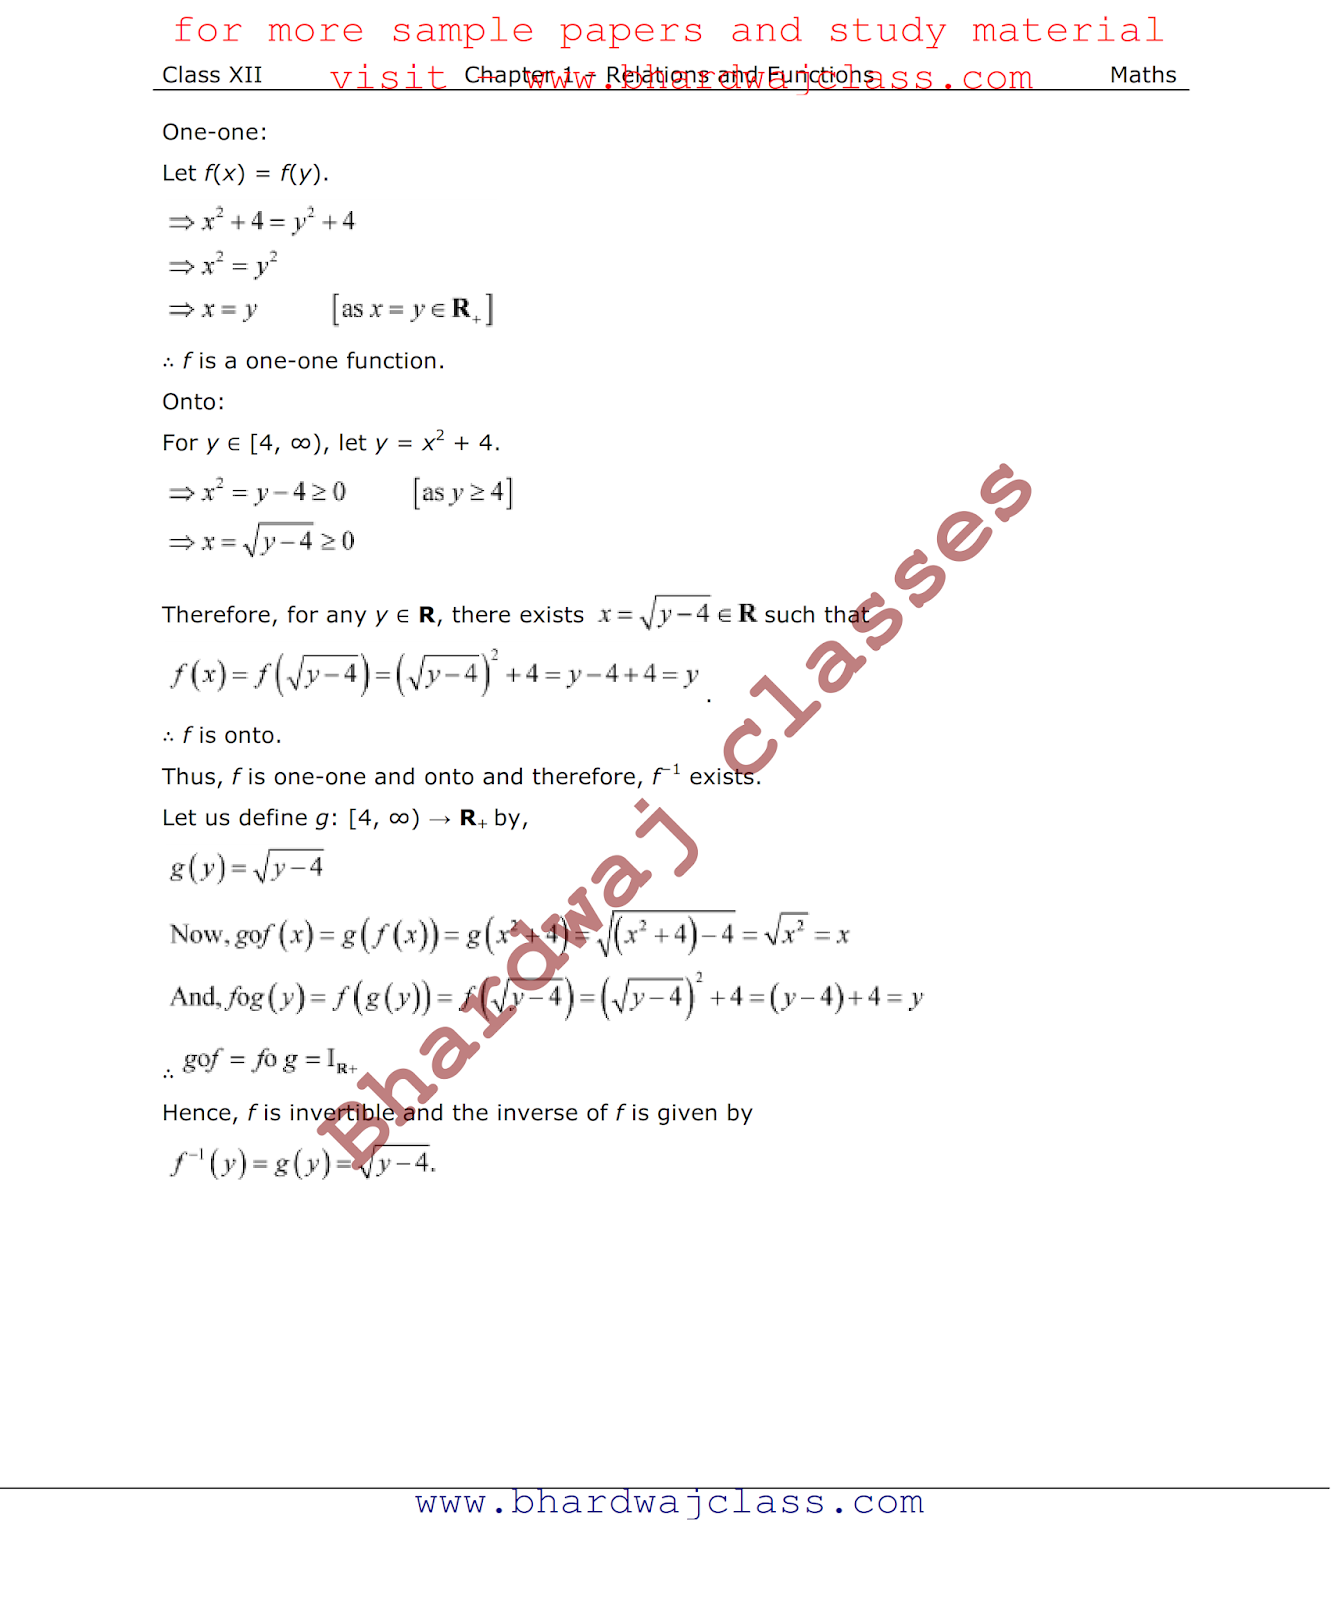 NCERT Solution class 12 maths chapter 1